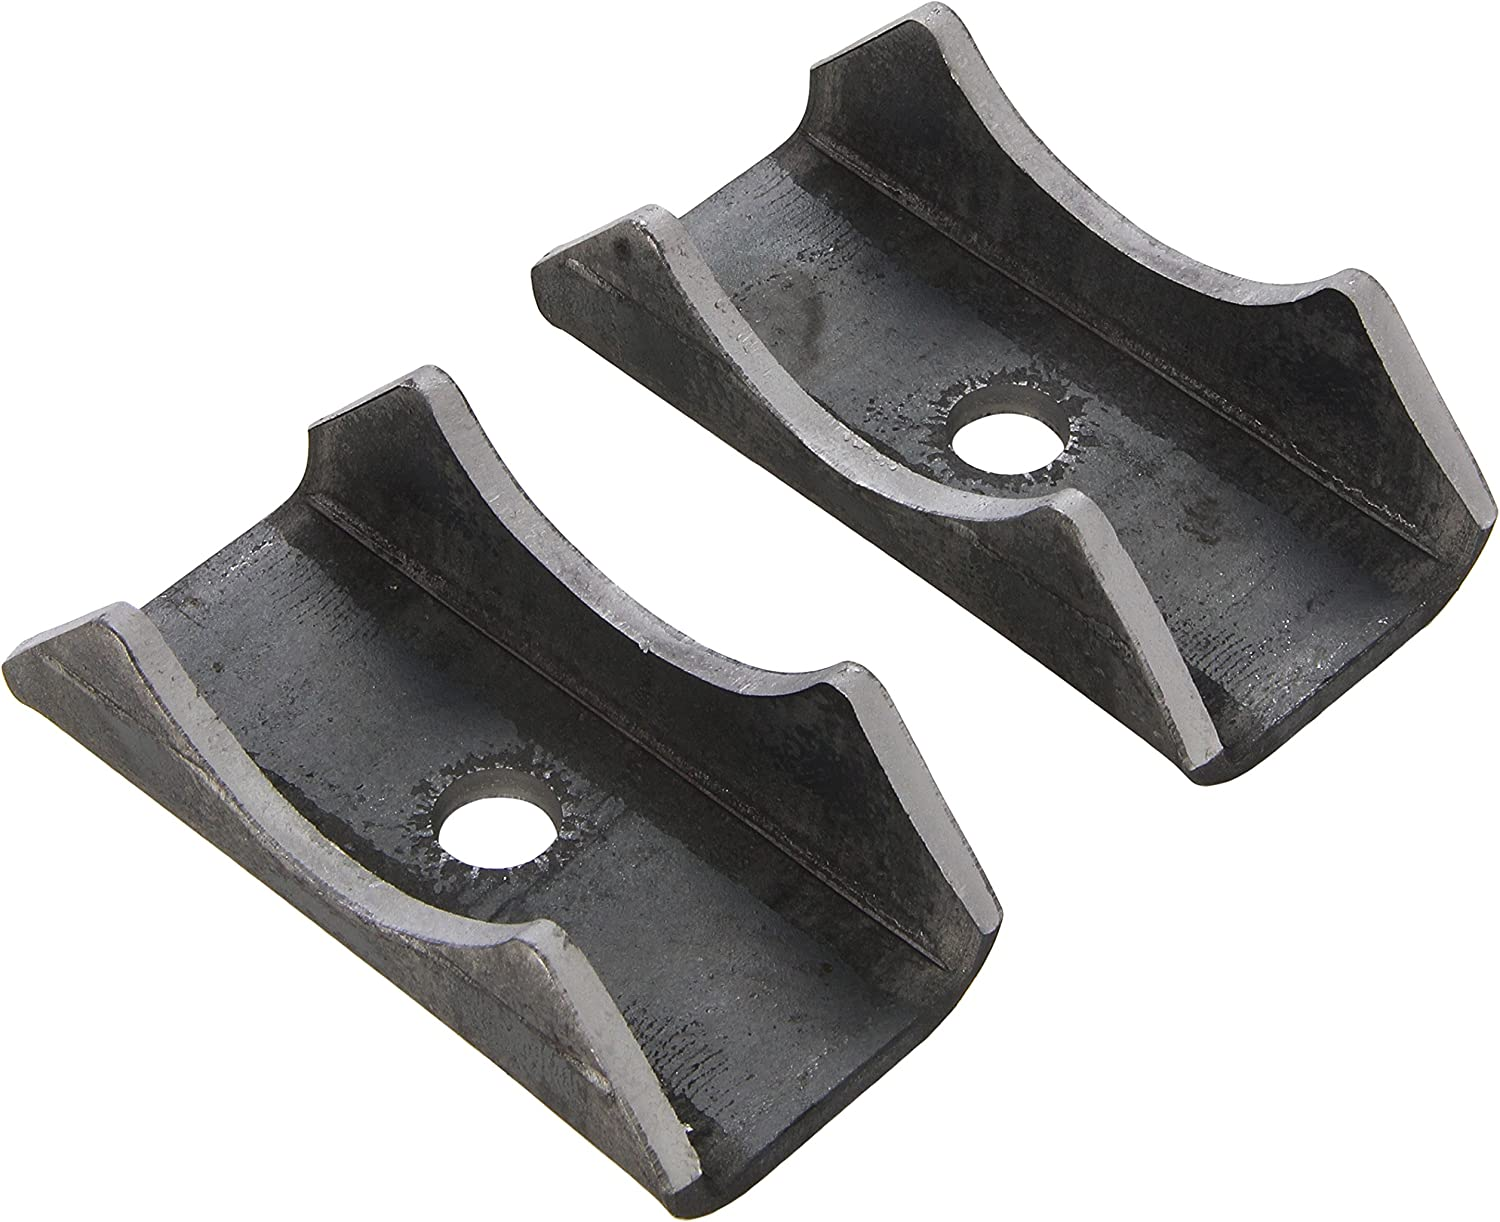 Elitewill 2Pcs Leaf Spring Axle Seat Perch Mount